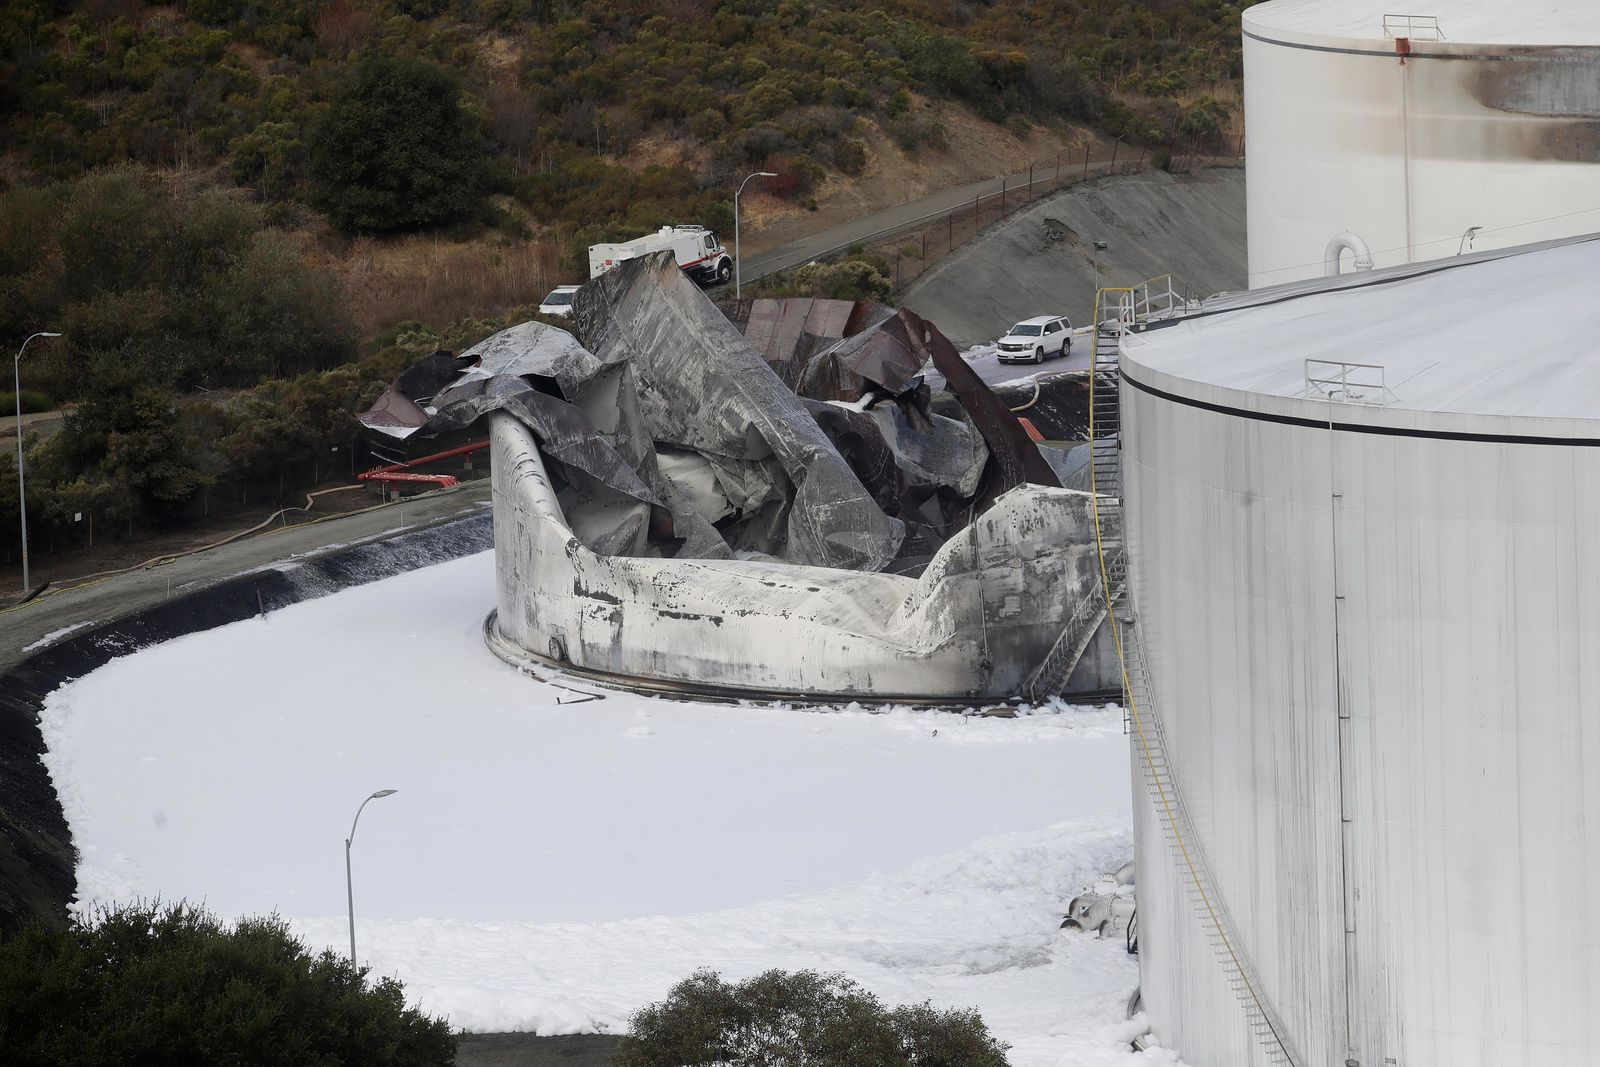 Damage from a Tuesday, Oct. 15, 2019, fire is shown at NuStar Energy fuel storage facility in Crockett, Calif., Wednesday, Oct. 16, 2019. Officials were trying to determine Wednesday if a 4.5 magnitude earthquake triggered an explosion at the fuel storage facility in the San Francisco Bay Area that started a fire and trapped thousands in their homes for hours because of potentially unhealthy air. (AP Photo/Jeff Chiu)